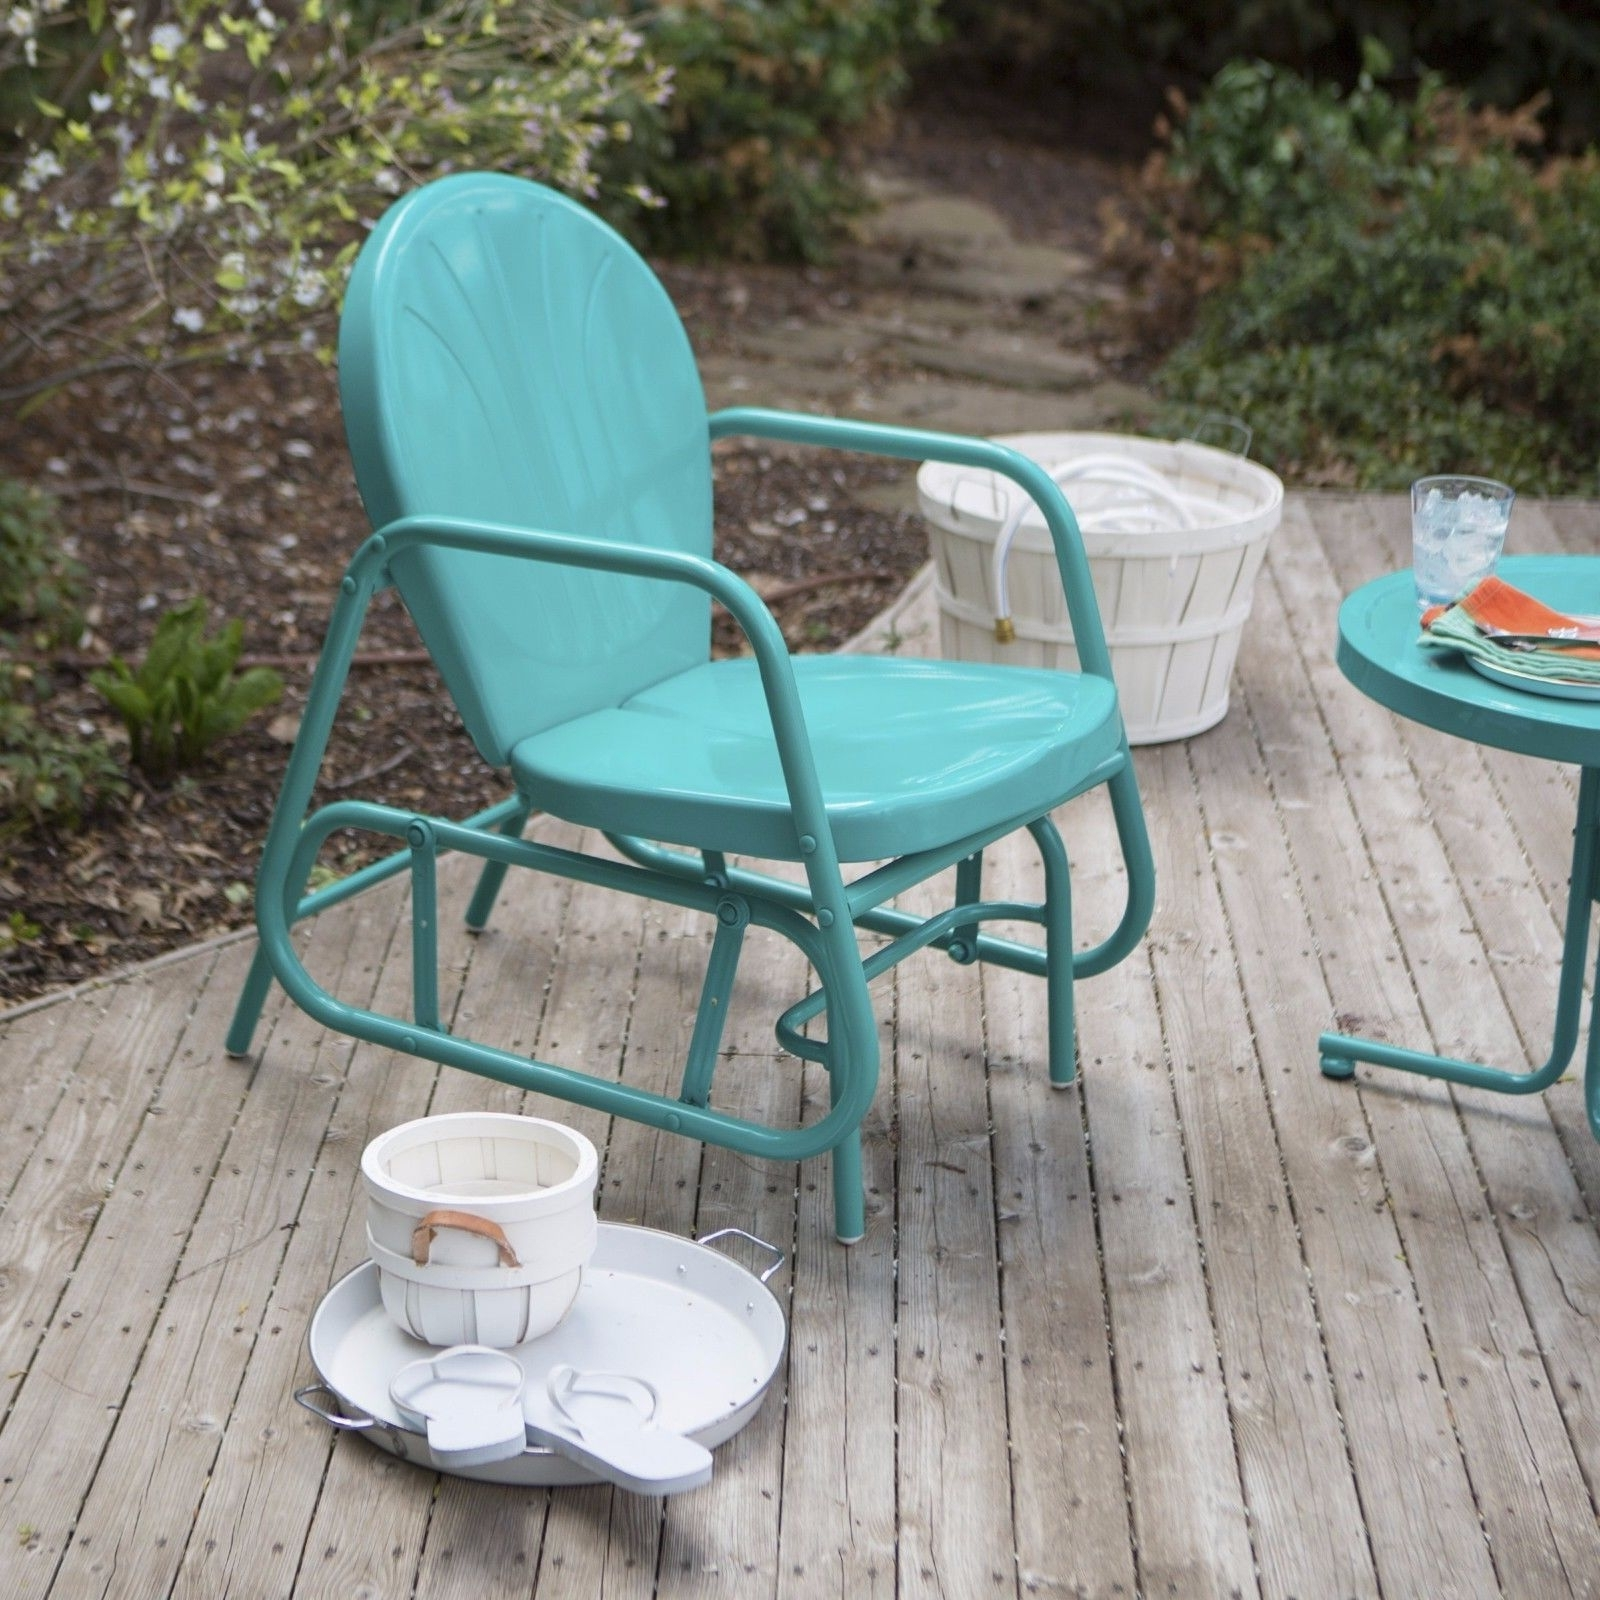 Retro Outdoor Rocking Chairs Intended For Most Popular Top Outdoor Furniture Vintage Pics – Struktura – Struktura (View 8 of 15)